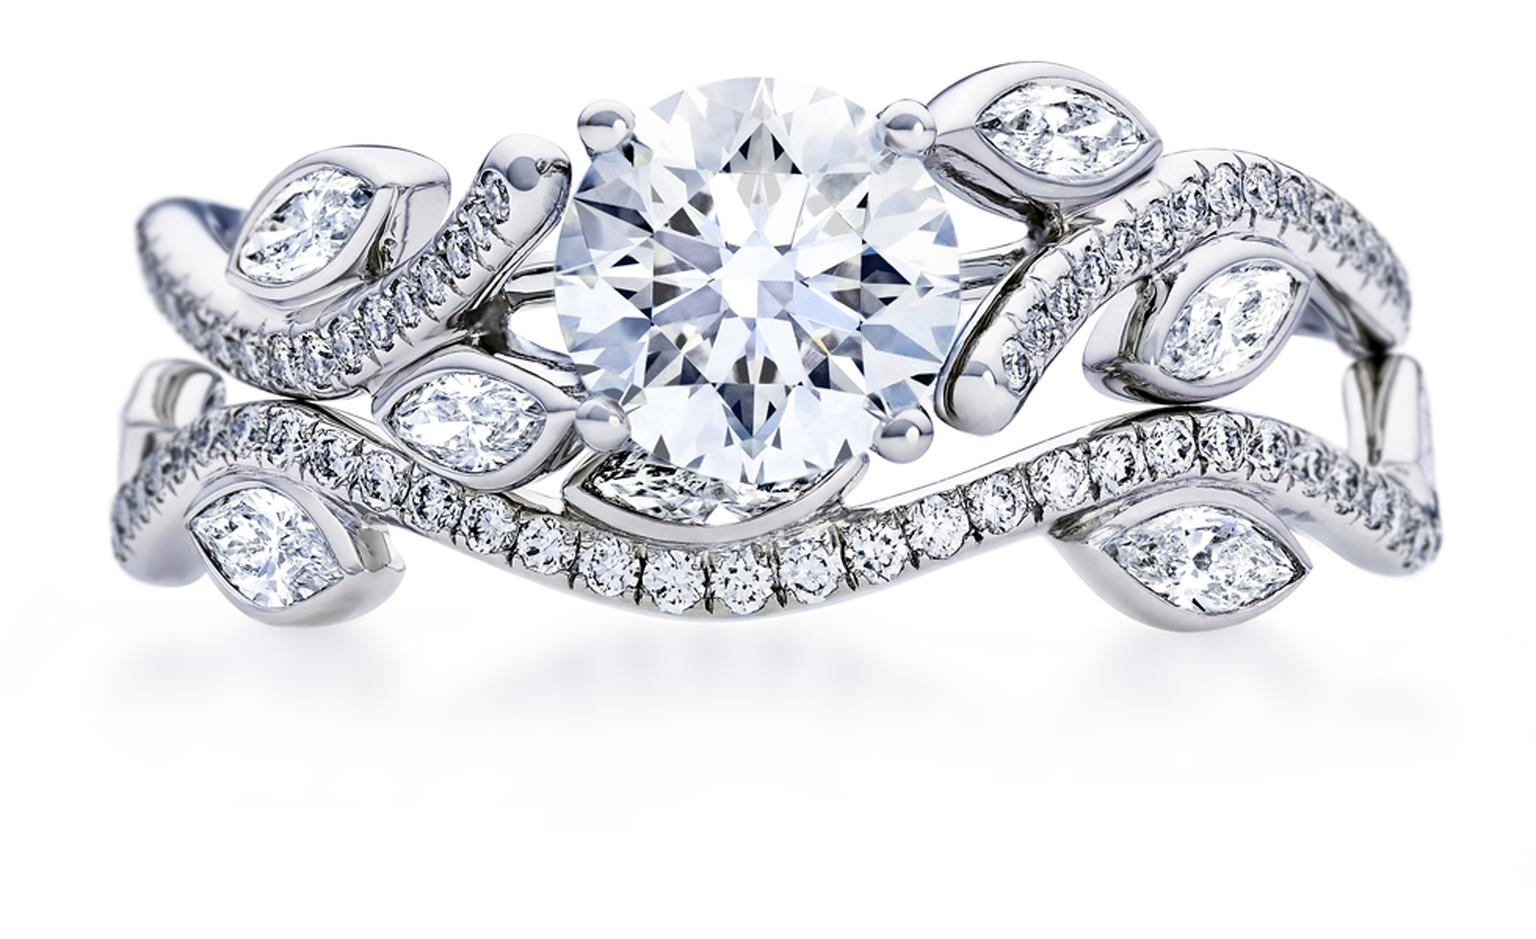 De Beers Adonis rose,  1-carat central diamond £8,450